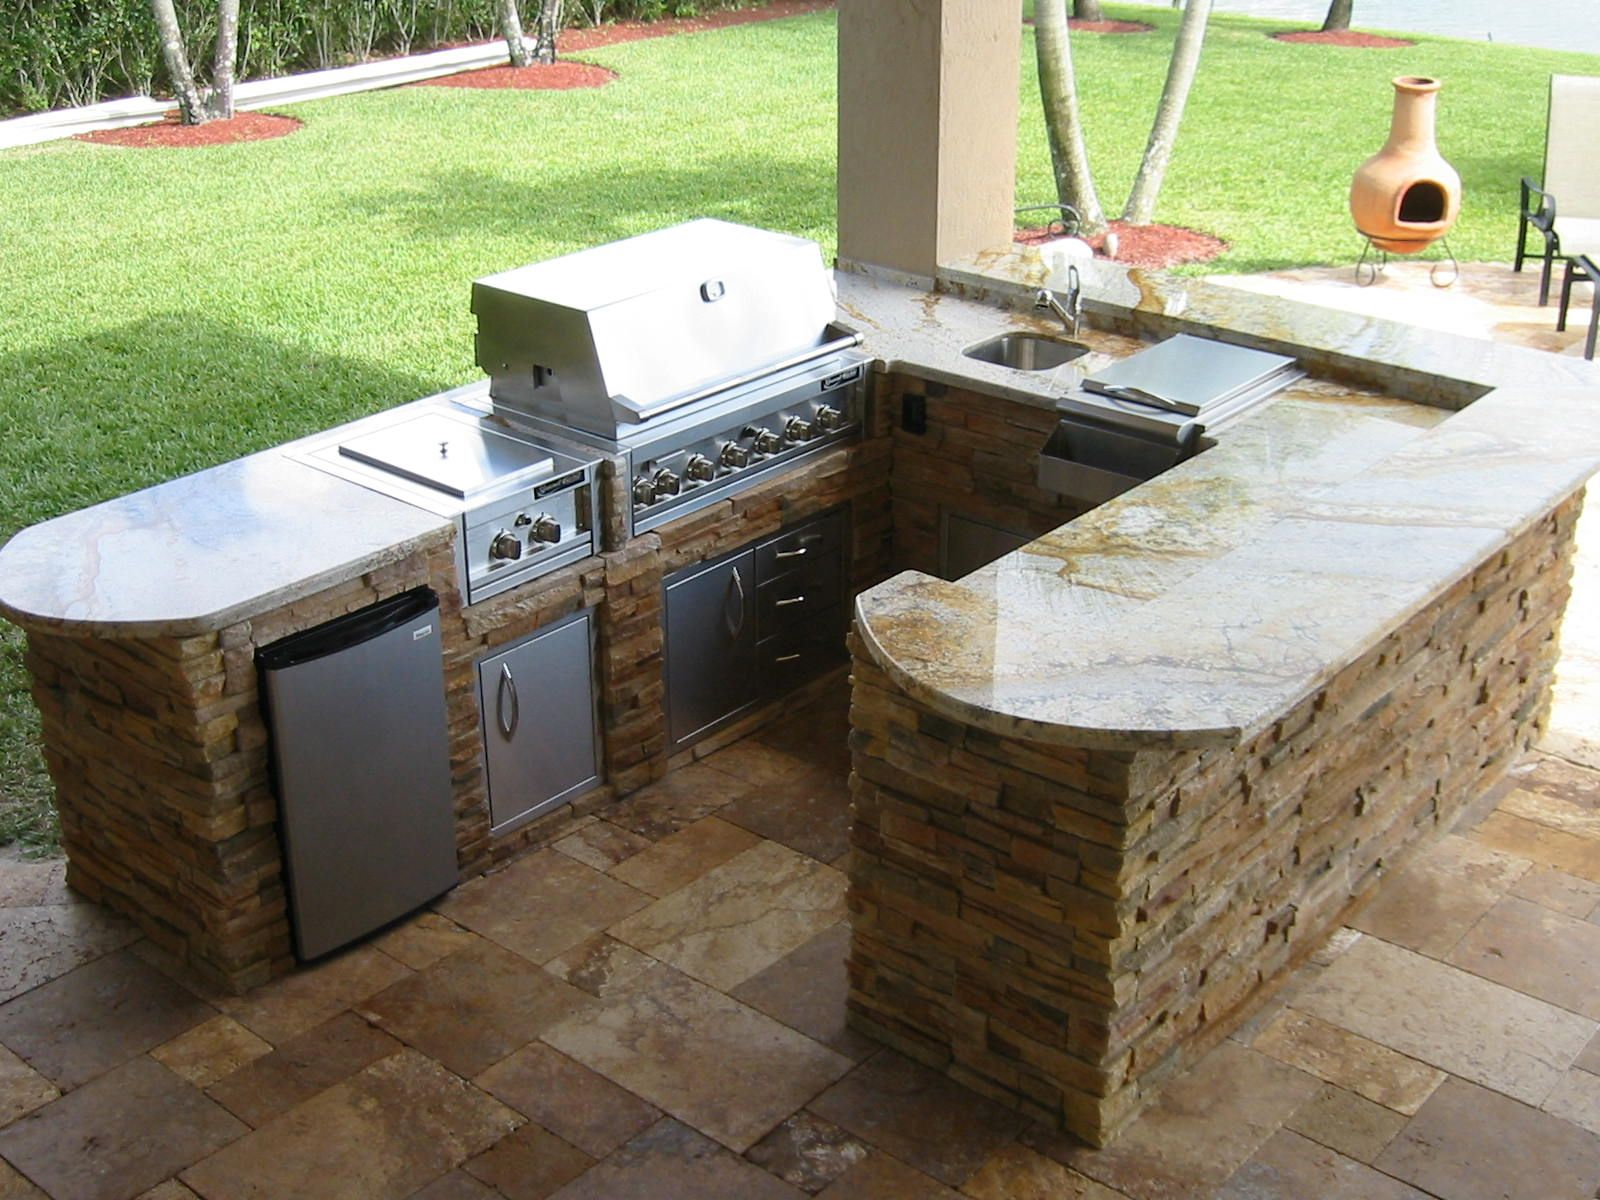 Outdoor kitchens small outdoor kitchens and bbq island on for Outdoor kitchen bbq designs